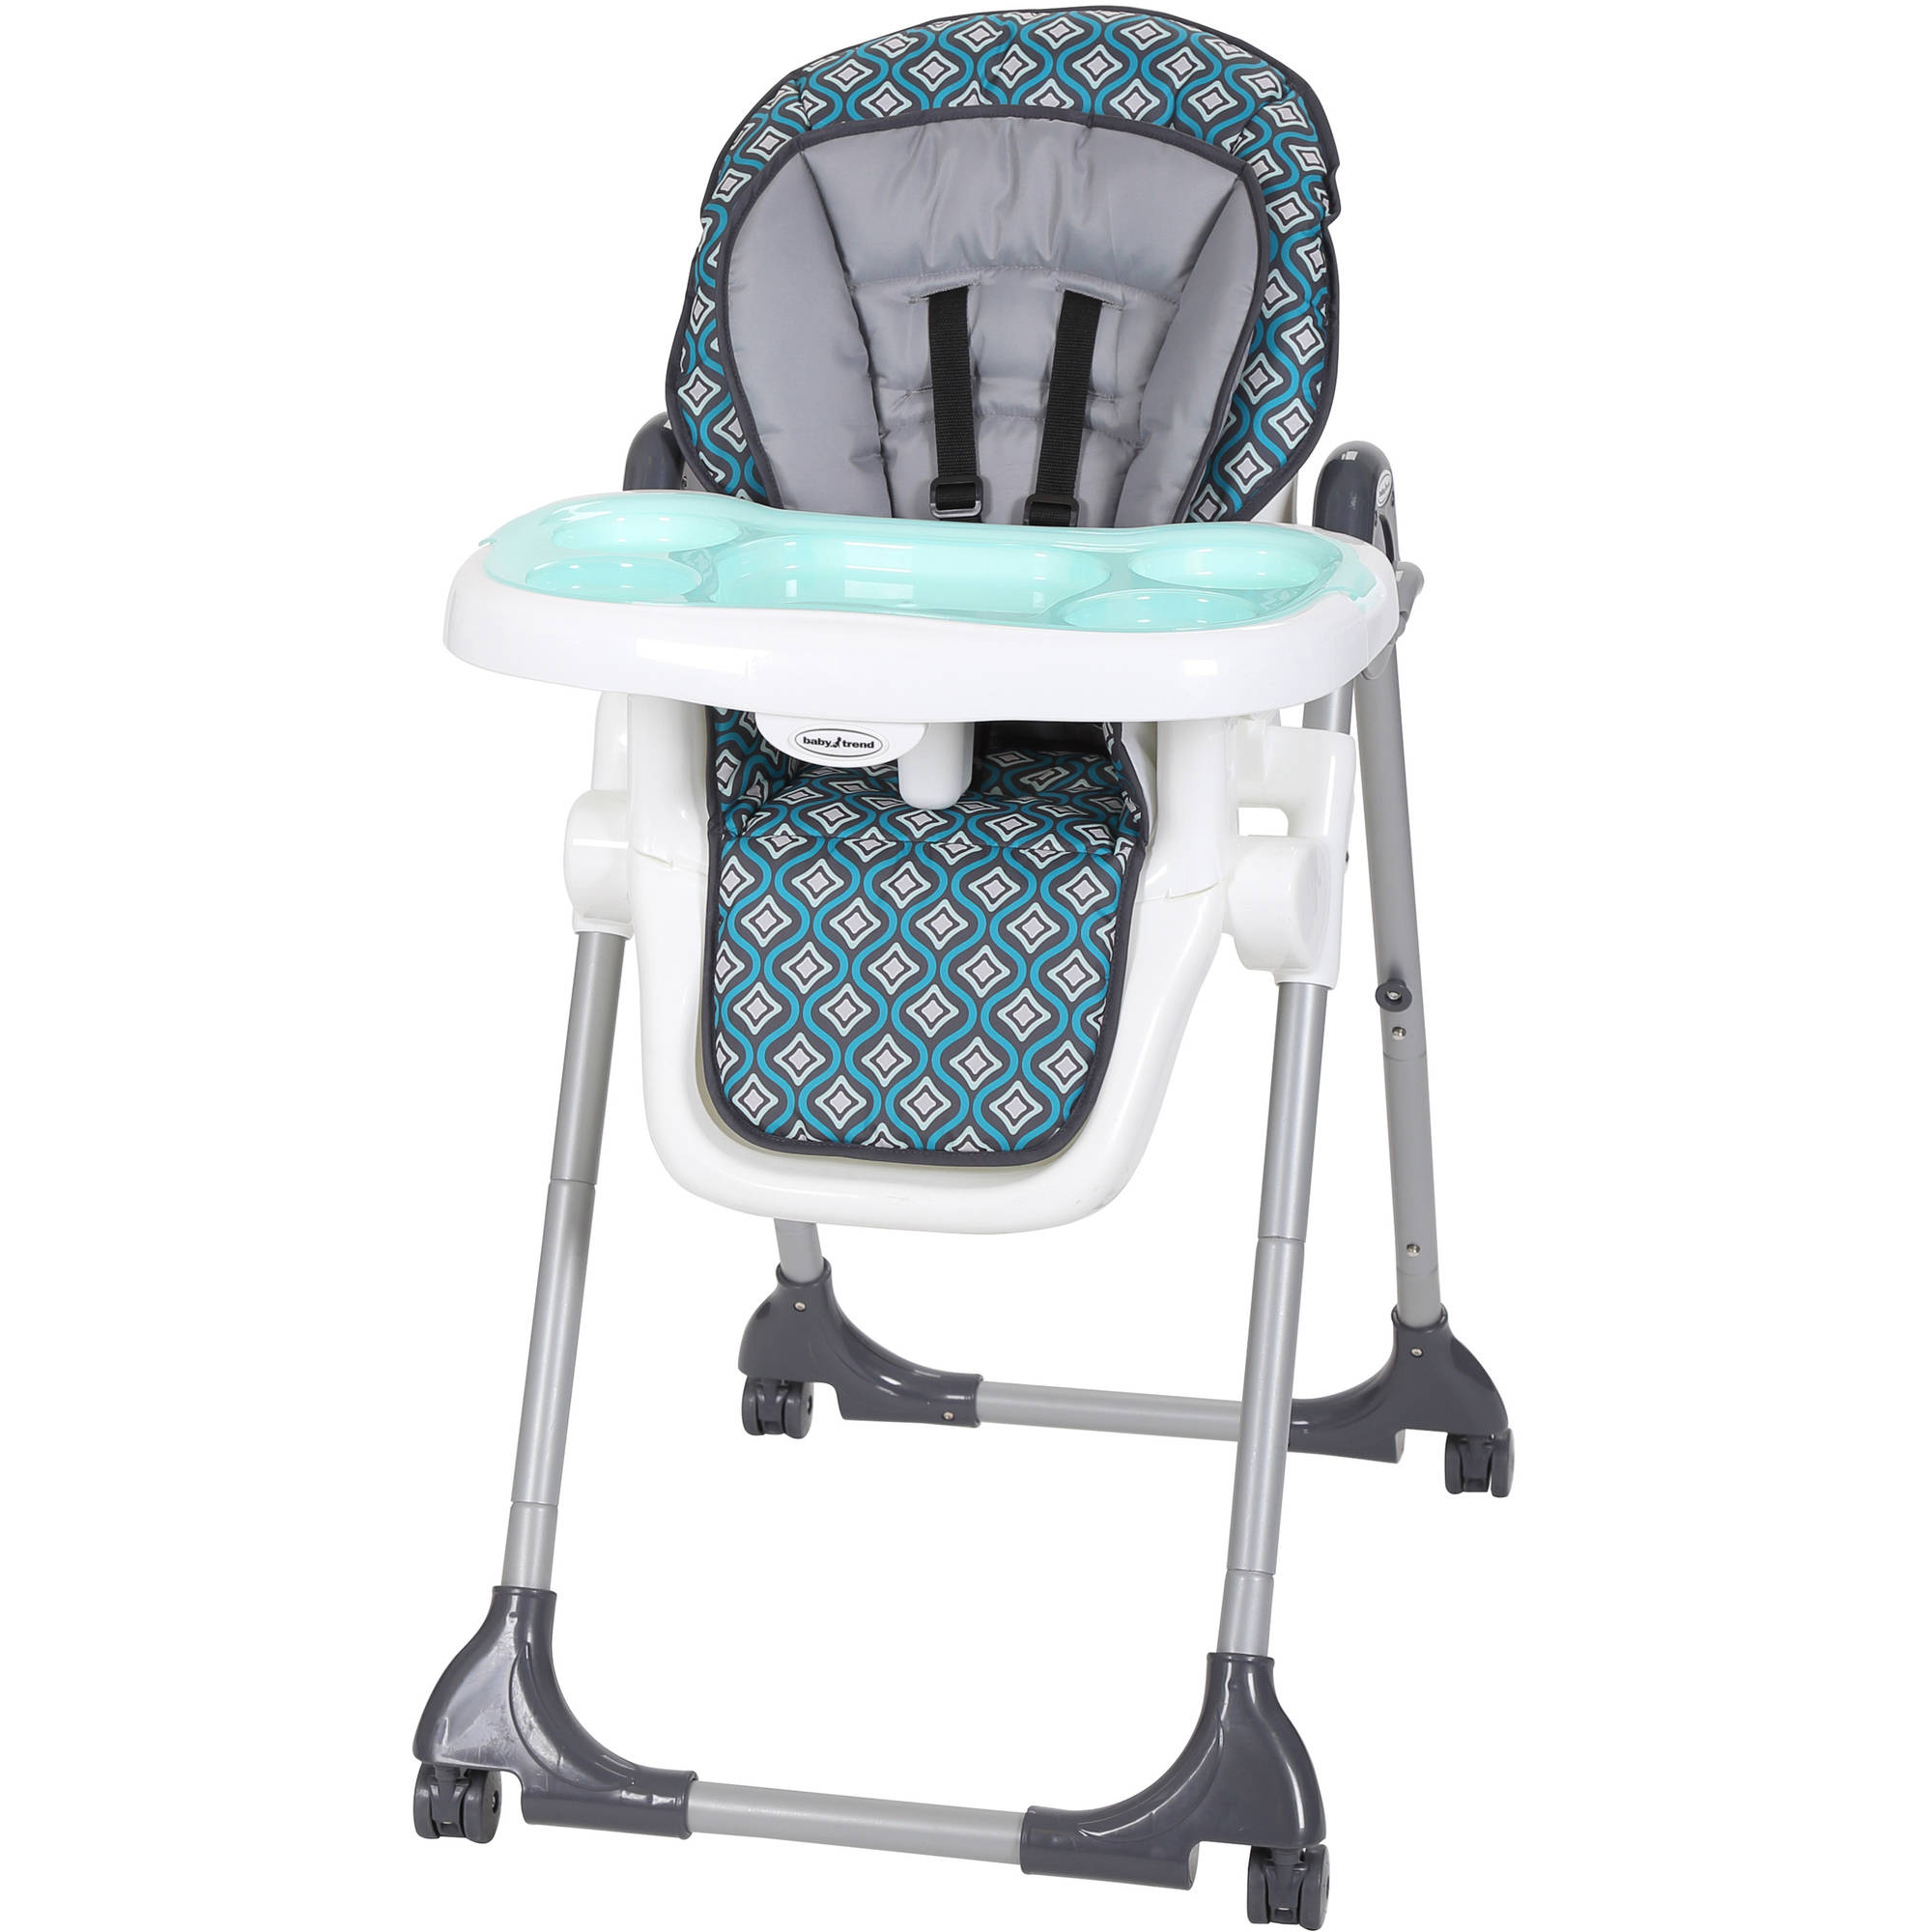 Baby Trend Deluxe 2 in 1 High Chair Diamond Wave Walmart